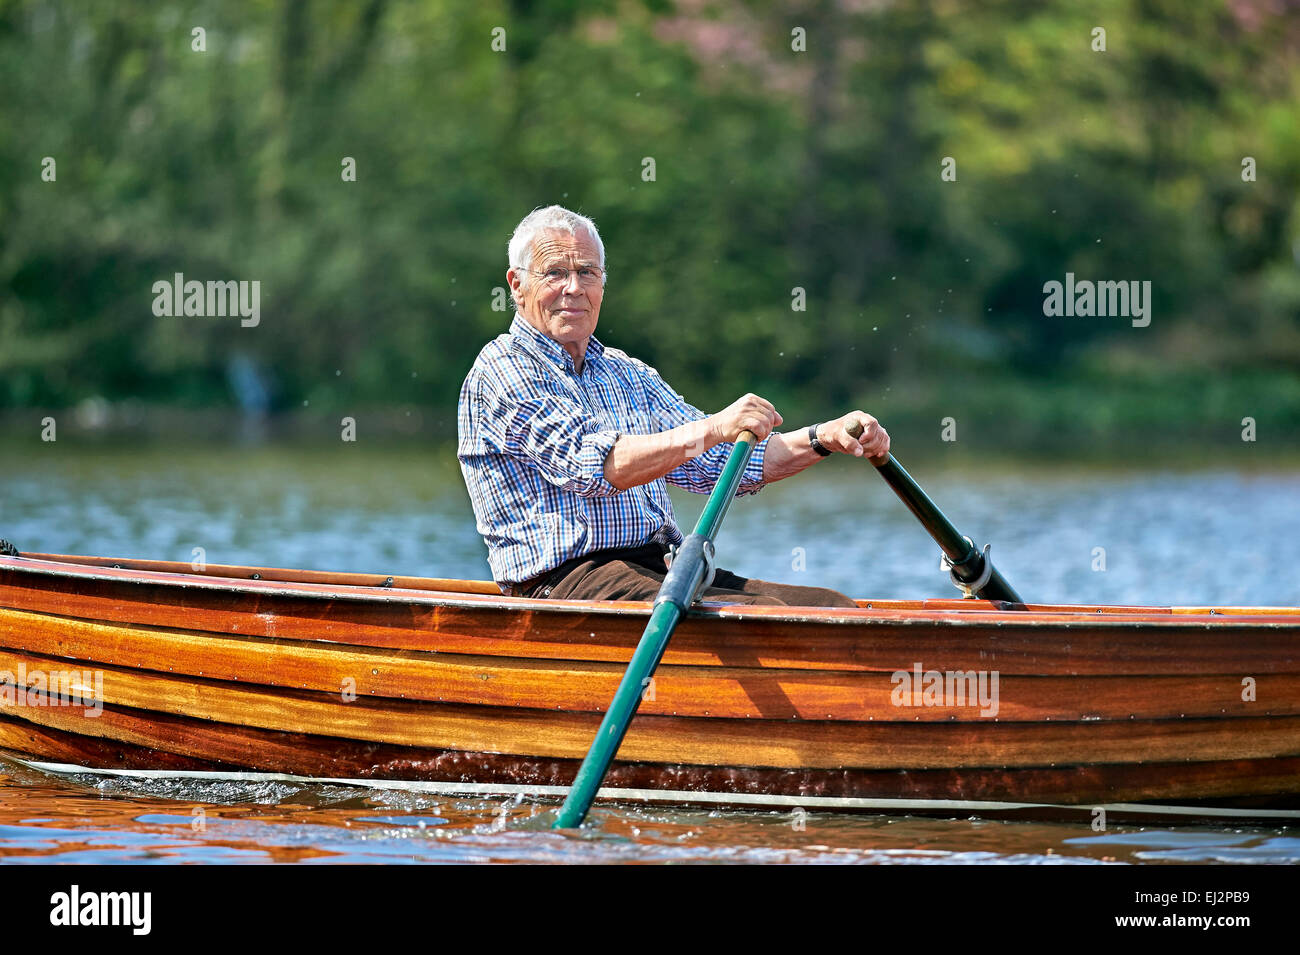 Senior riding a rowboat - Stock Image